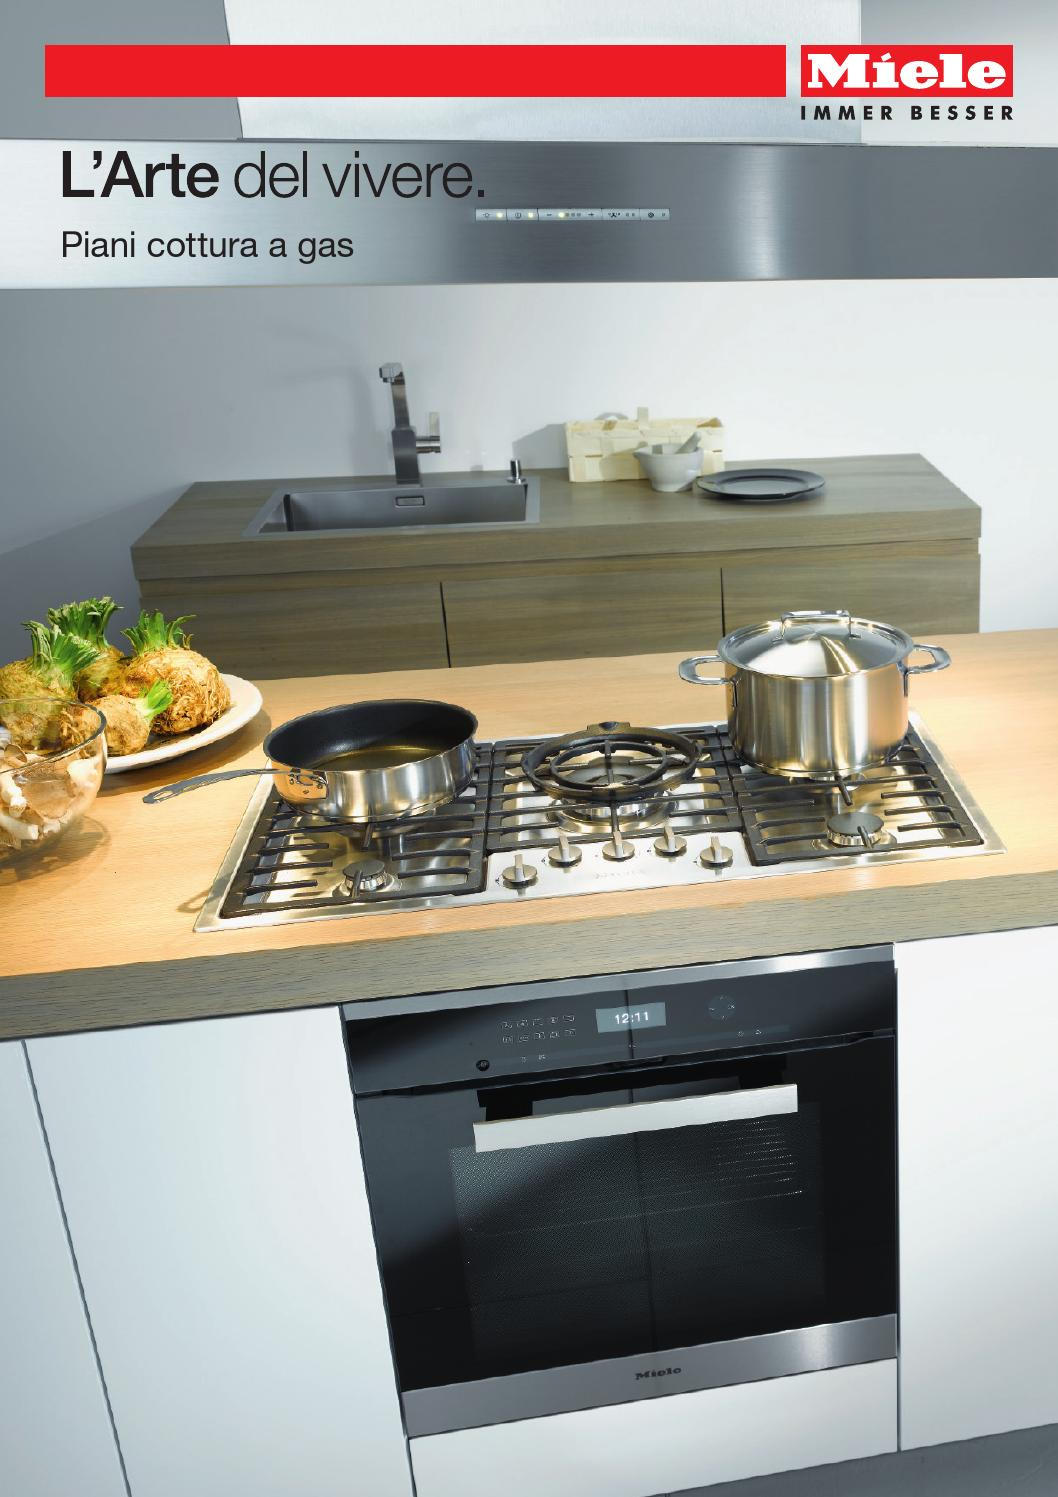 Miele - Catalogo Piani cottura a gas - I by Miele - issuu